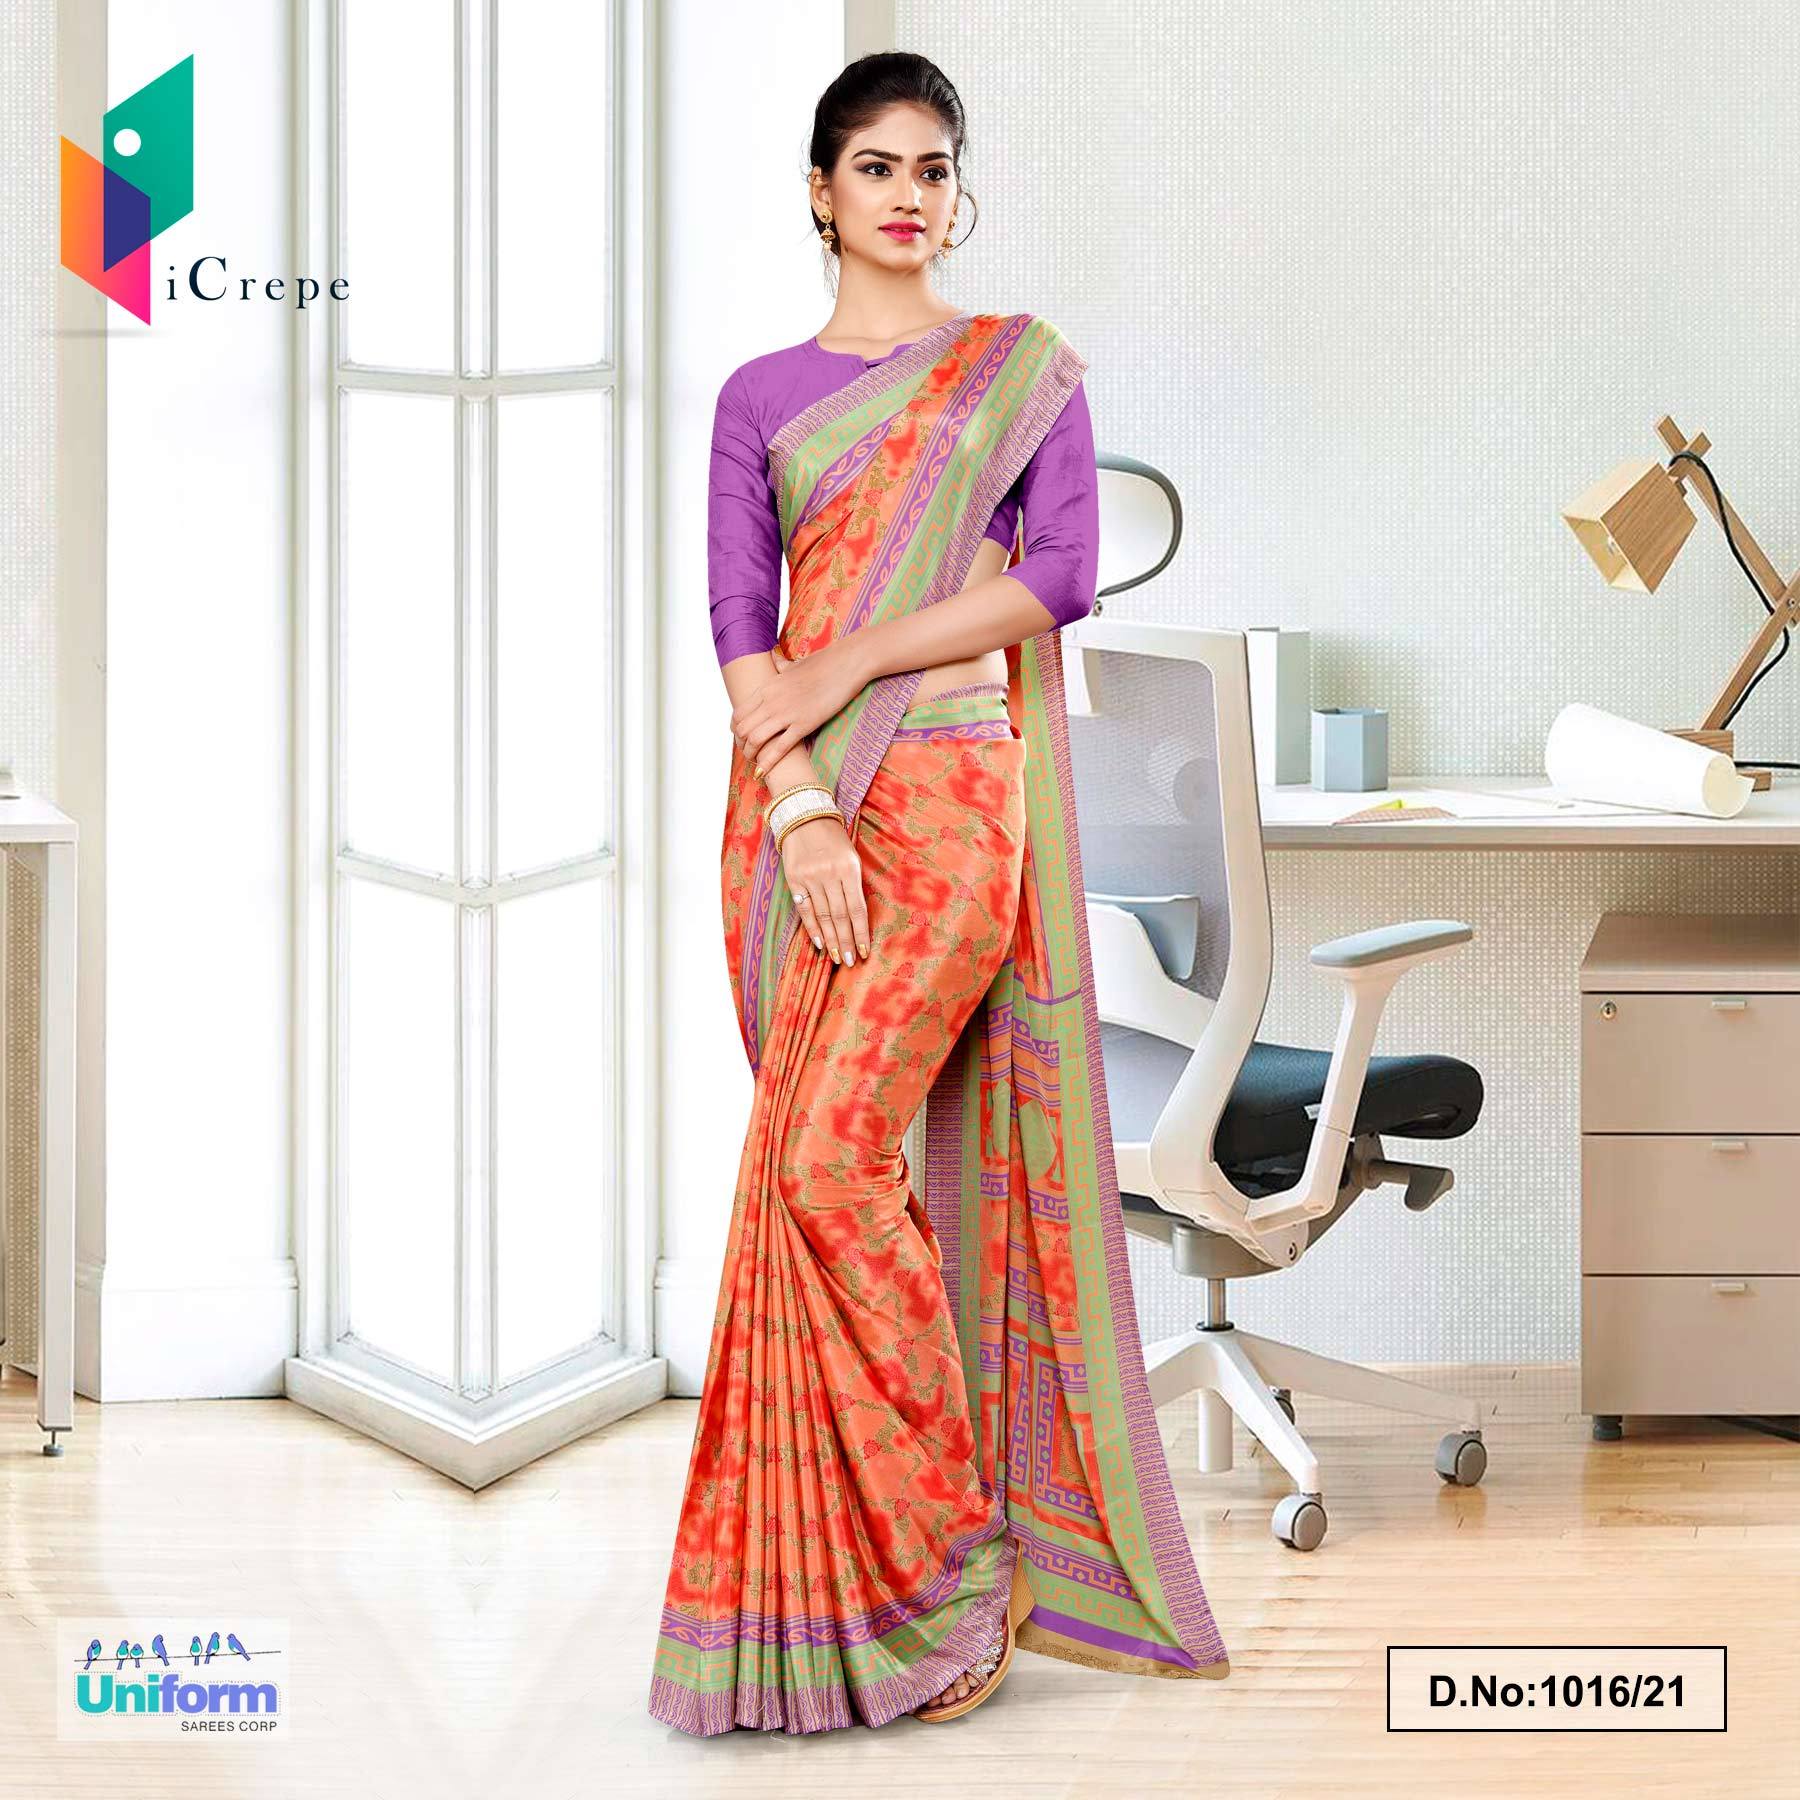 Orange Multi Print Premium Italian Slik Crepe Uniform Sarees